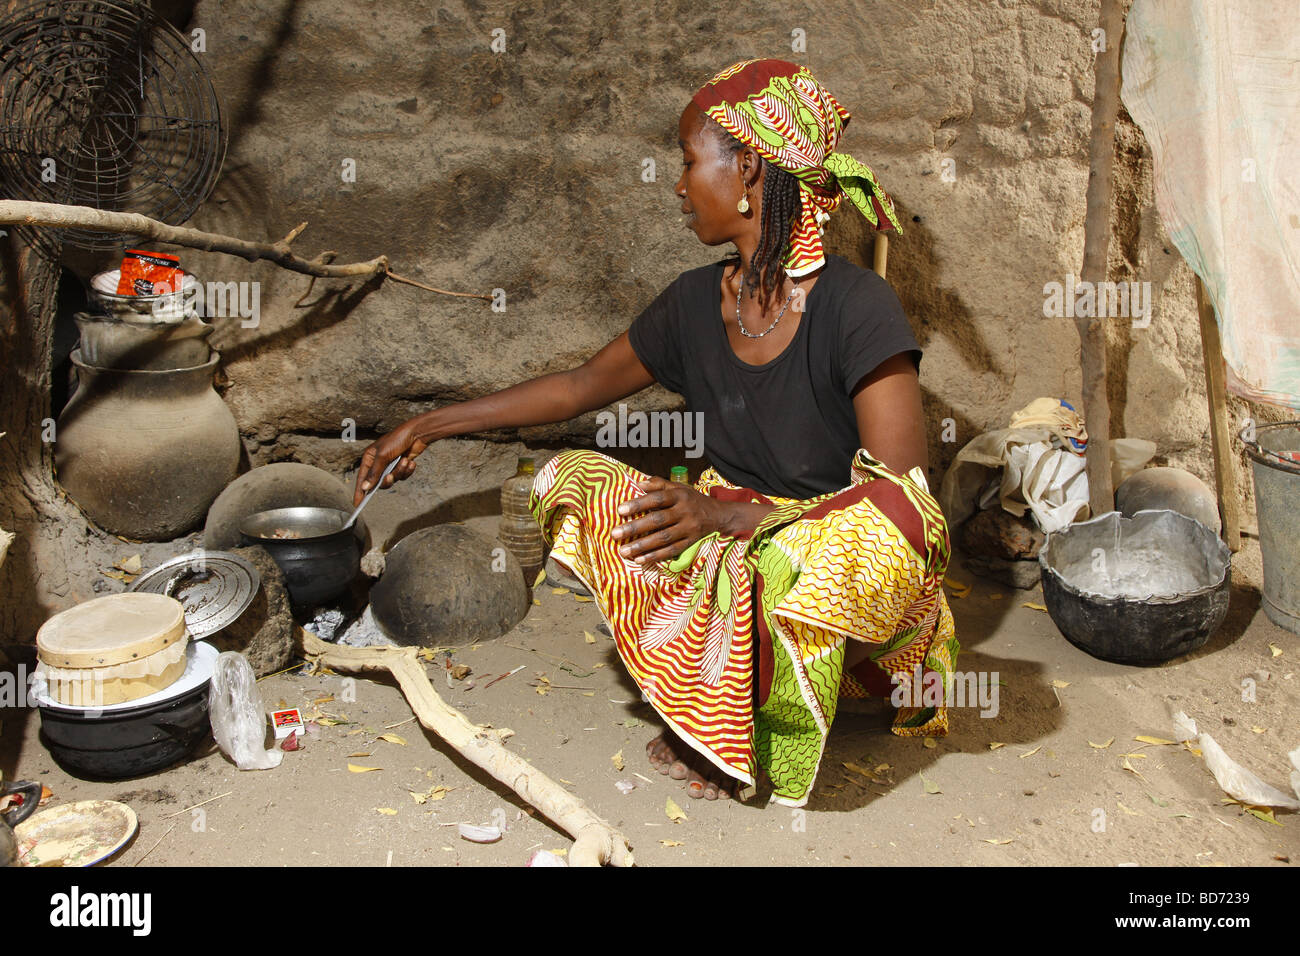 Woman cooking at the fireplace in a house, Maroua, Cameroon, Africa - Stock Image